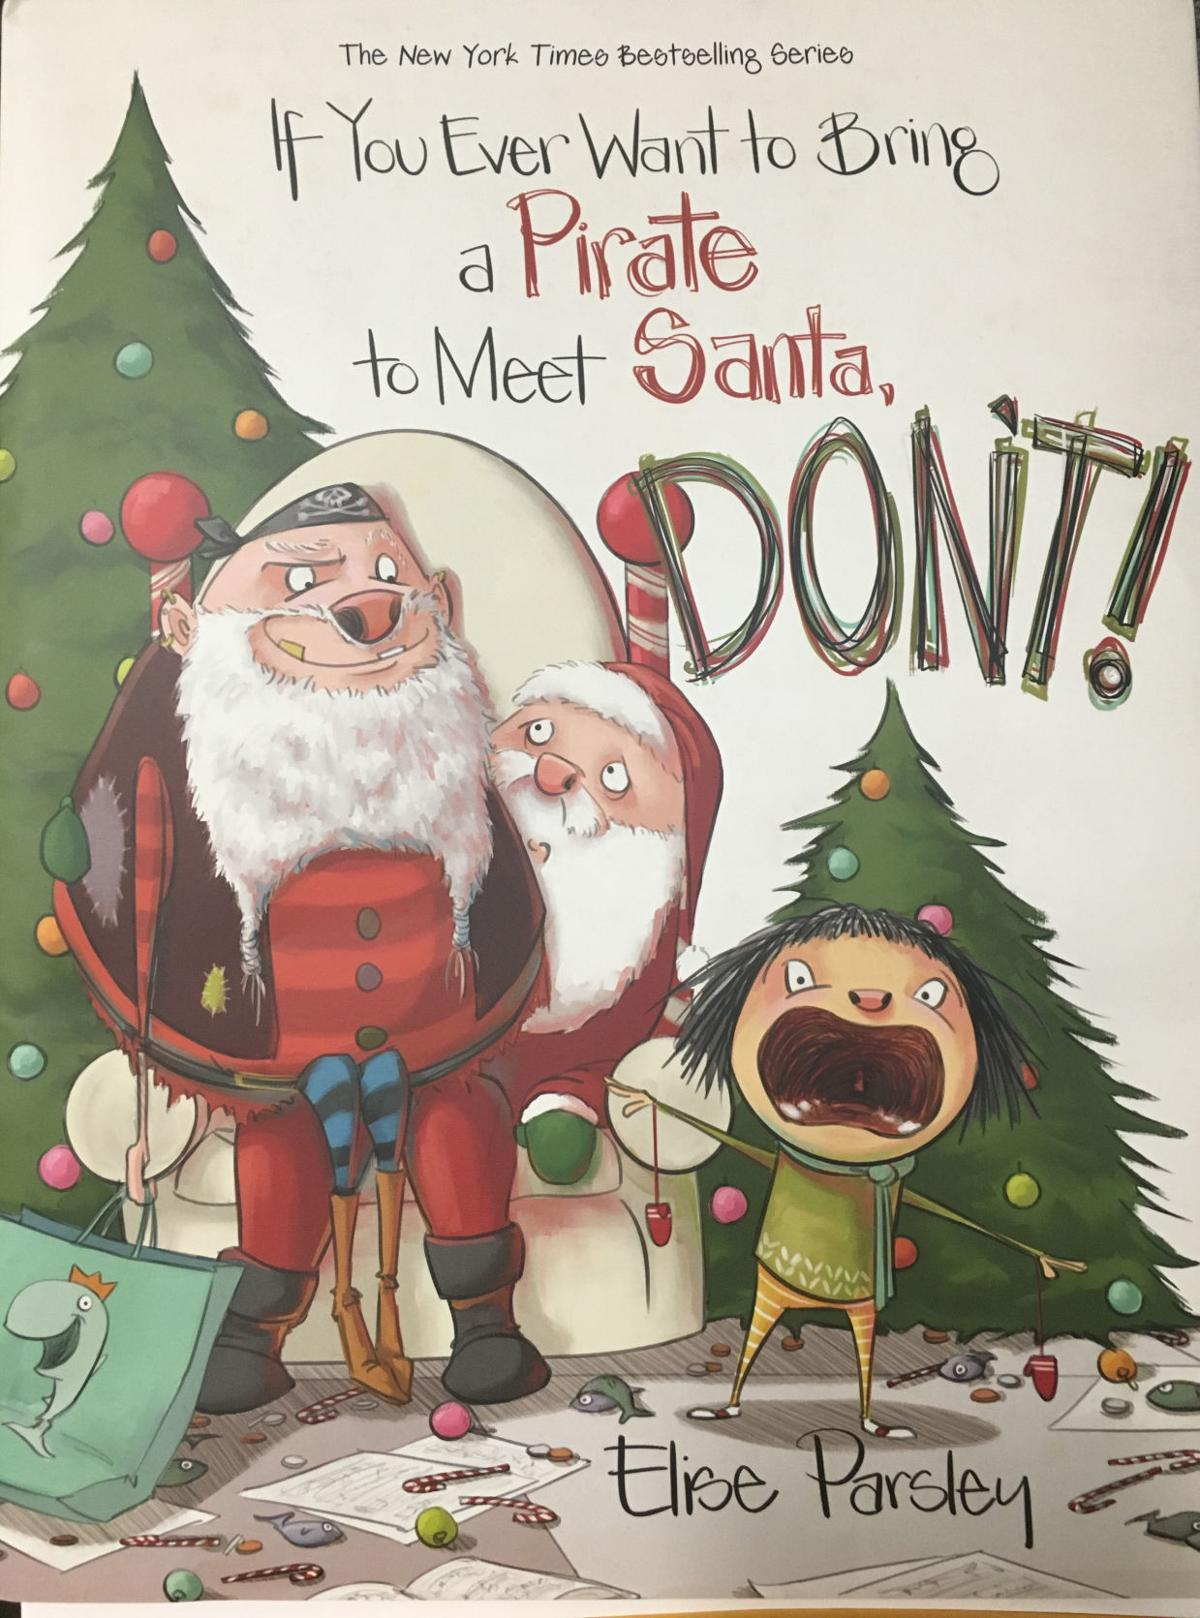 'If You Ever Want to Bring a Pirate to Meet Santa, Don't!'